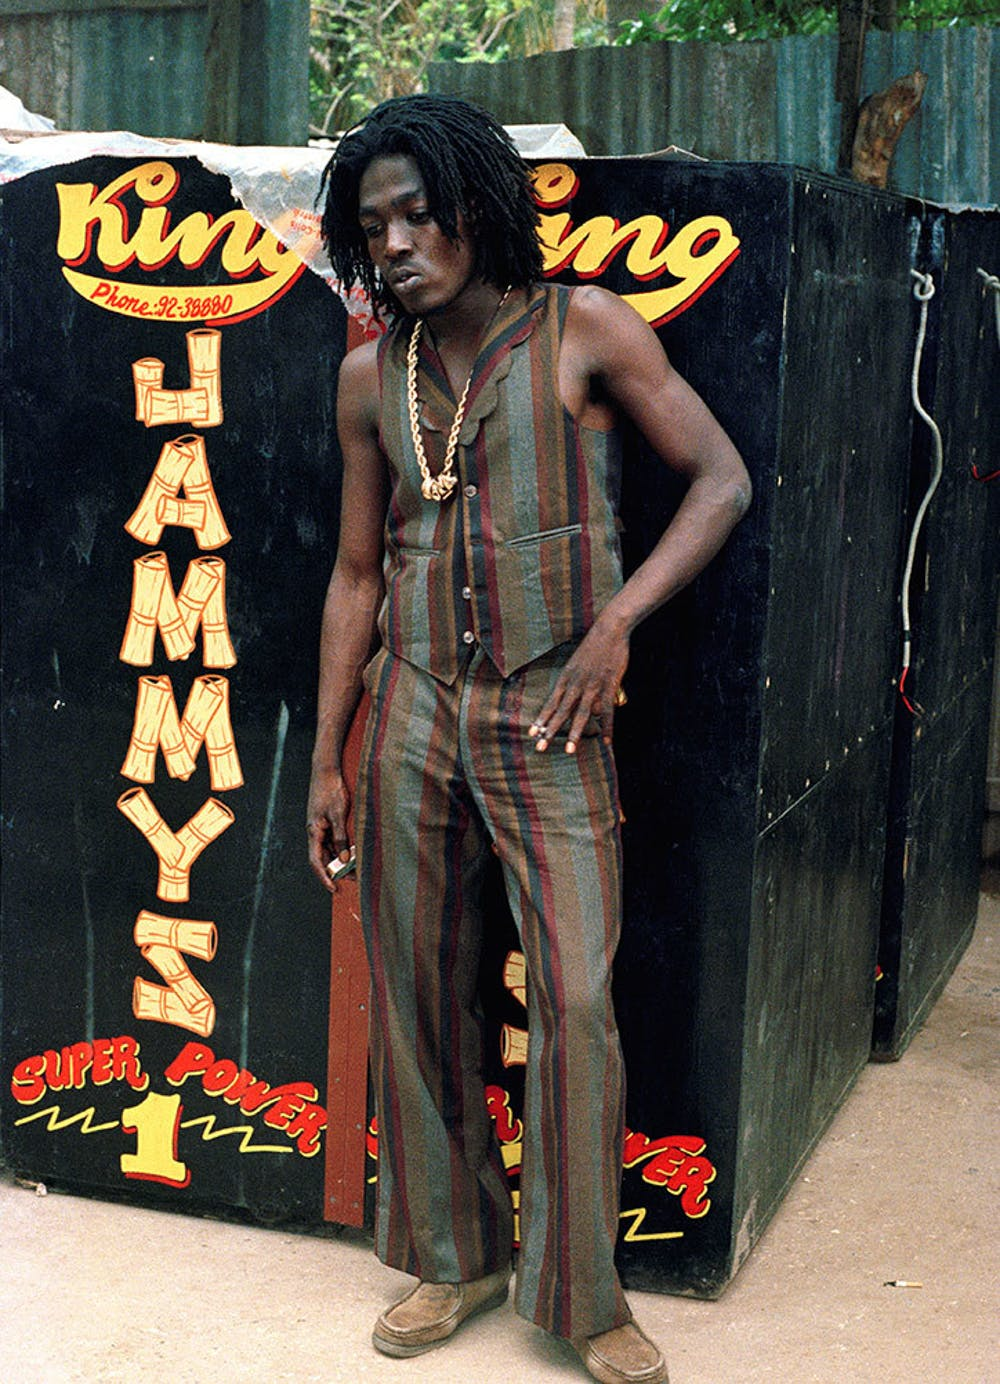 First hand look at the 1980s Jamaican Dance Hall scene 6 of 15 Grab your weed, grab your snacks, theres going to be a Lord Of The Rings TV series